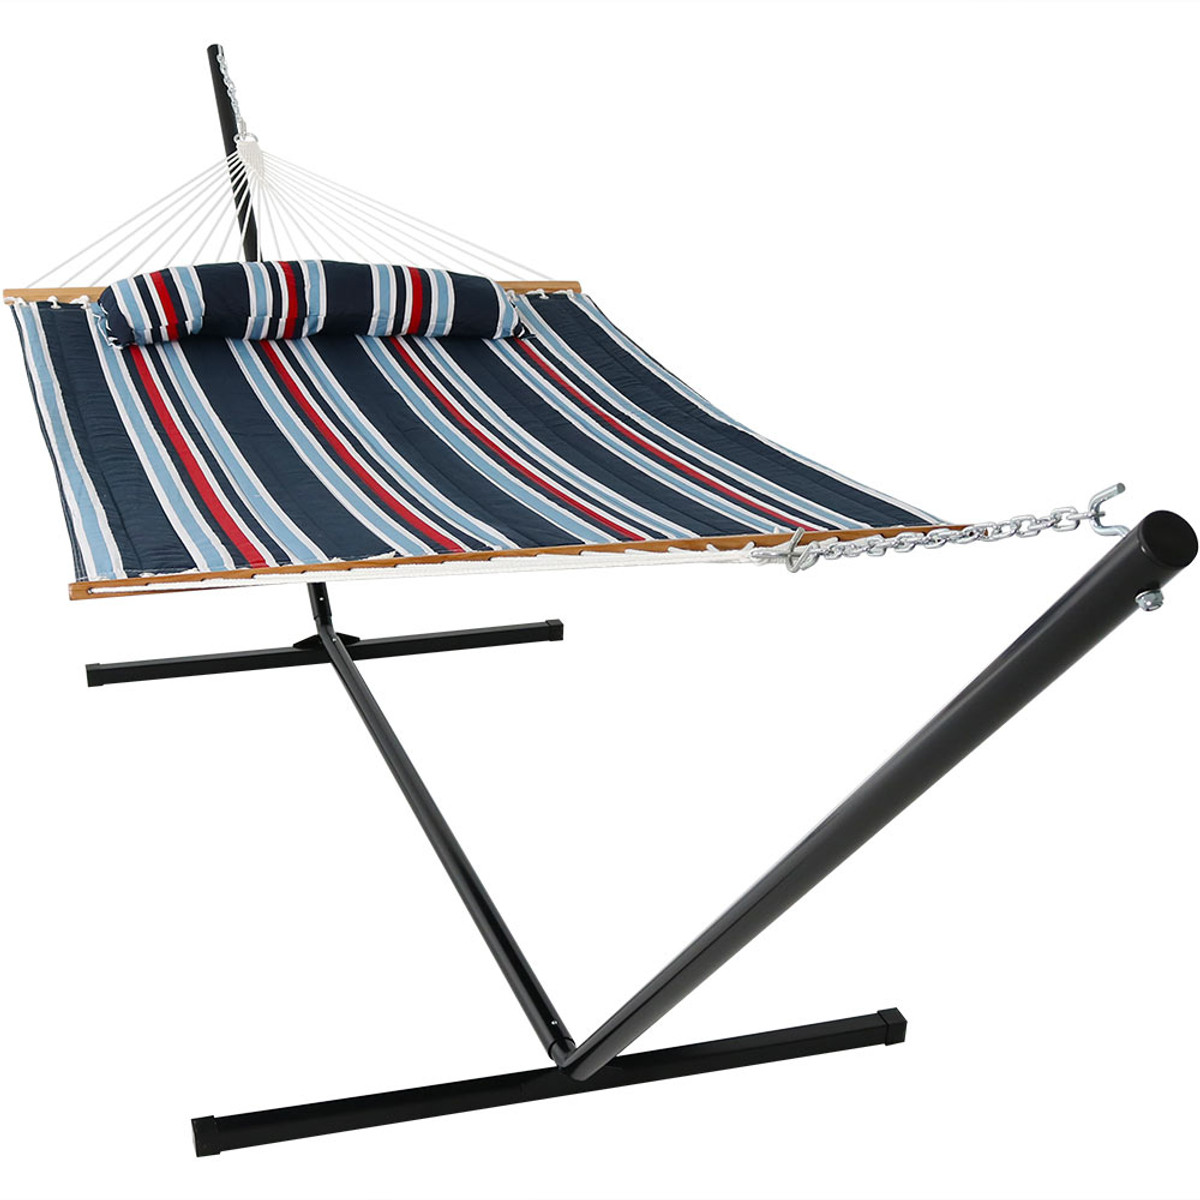 Sunnydaze 2 Person Freestanding Quilted Fabric Spreader Bar Hammock, Choose from 12 or 15 Foot Stand, Nautical Stripe